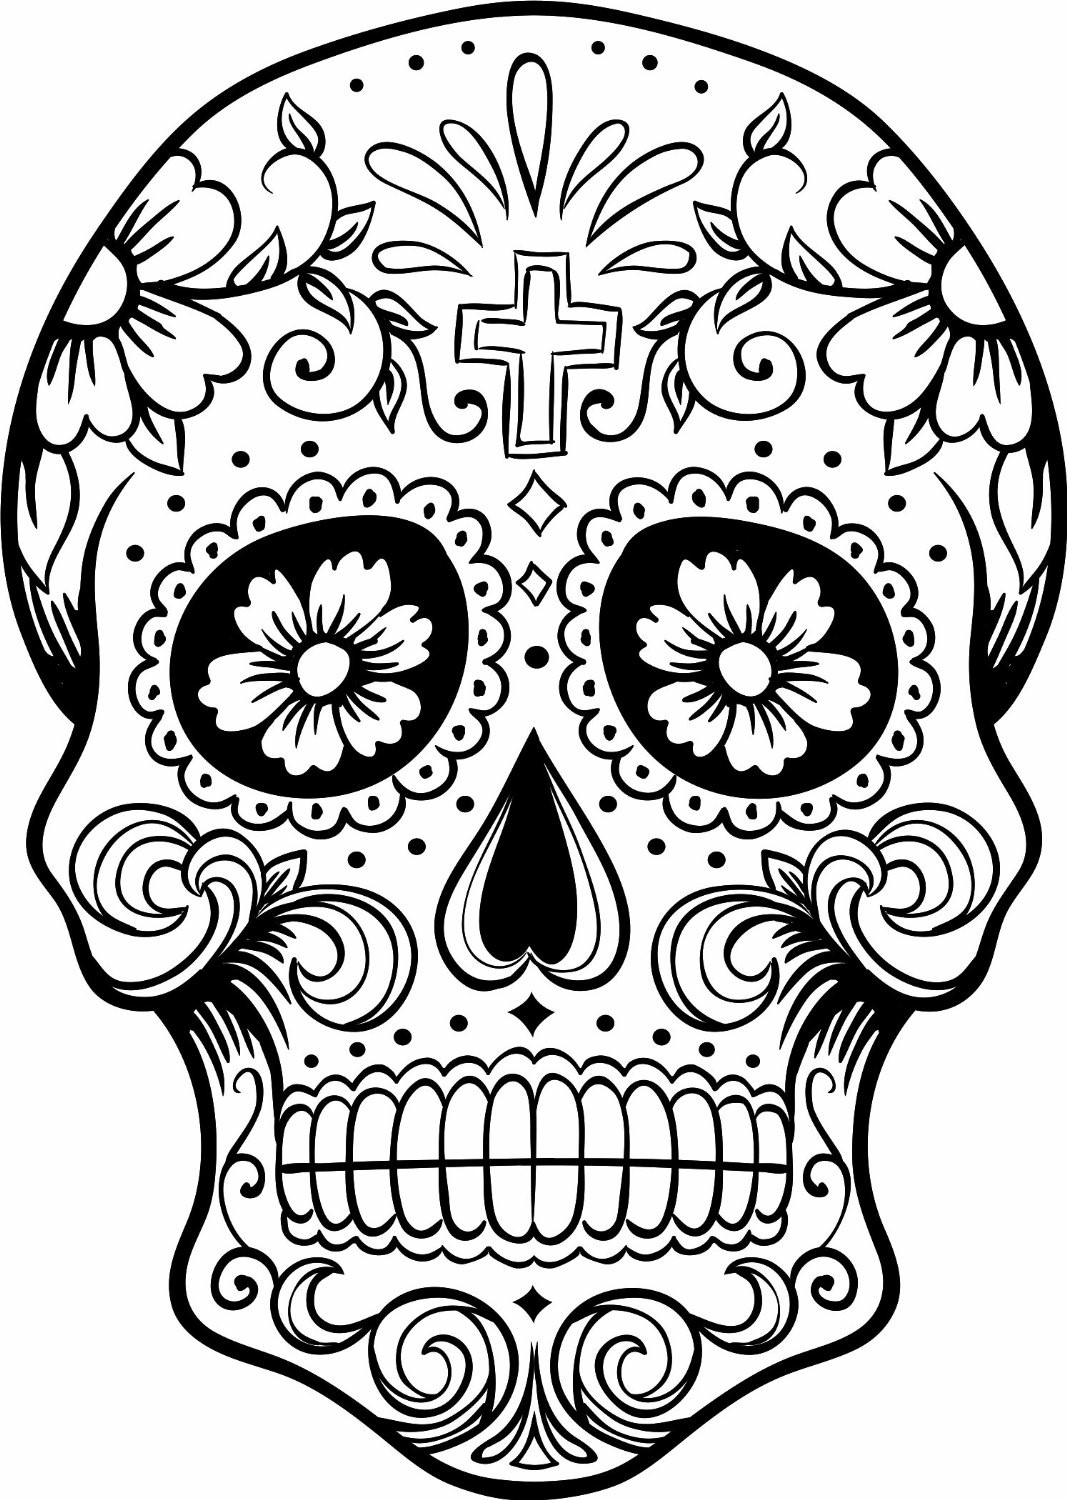 day of the dead skull mask template - dia de los muertos day of the dead news metro